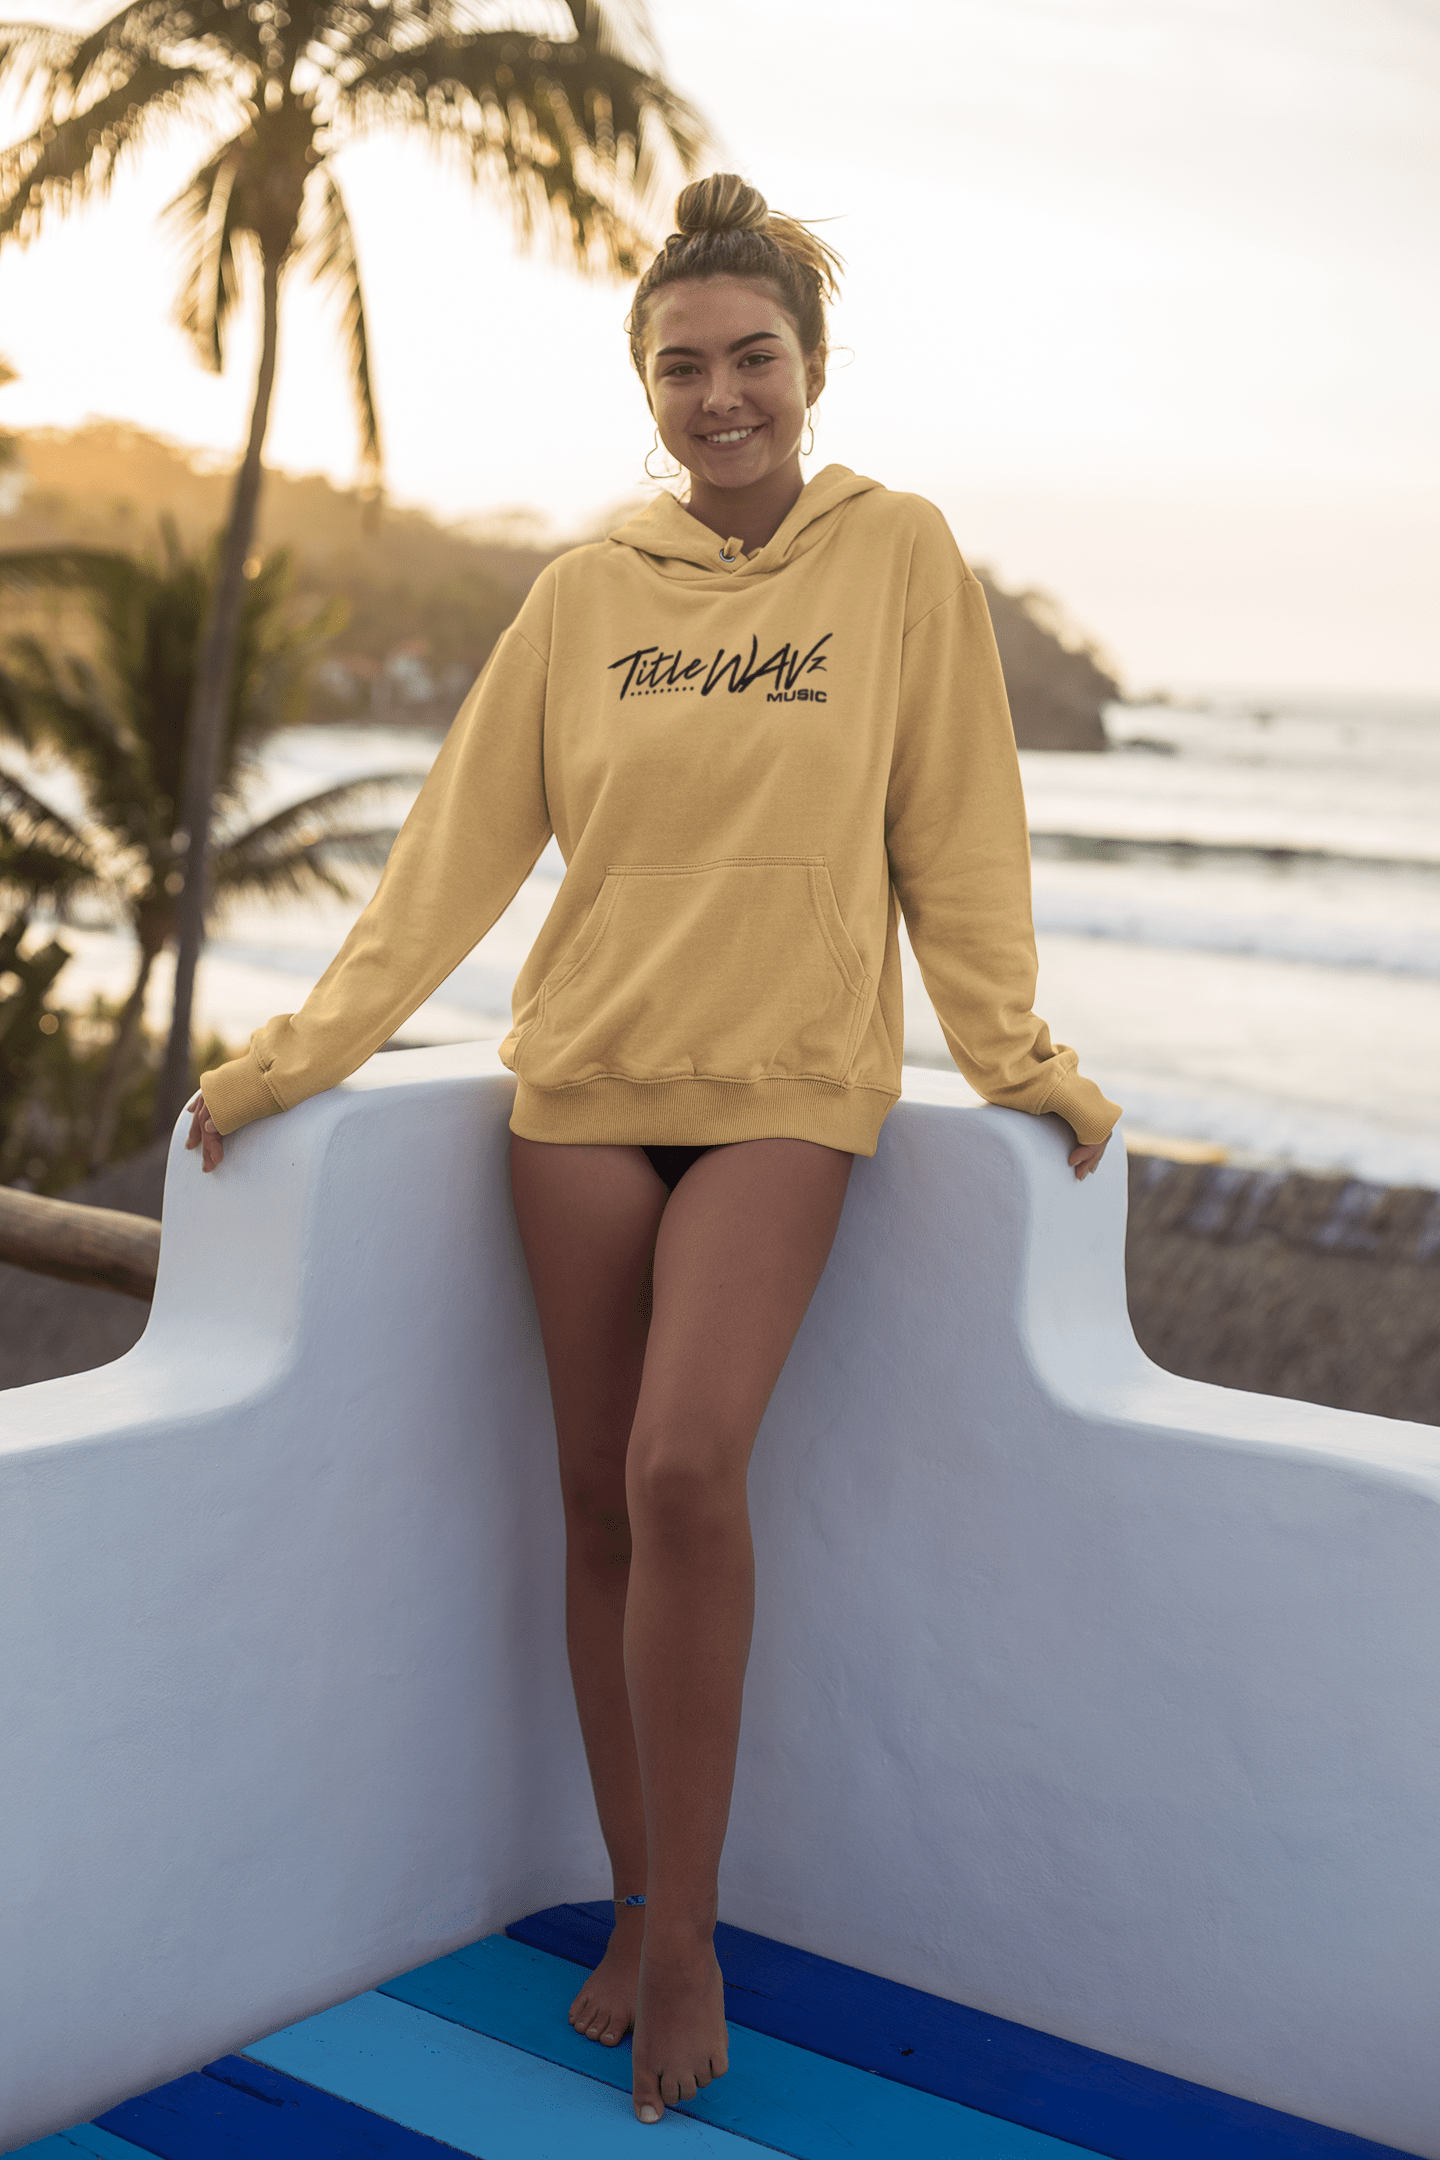 hoodie-mockup-of-a-smiling-woman-posing-at-sunset-26781